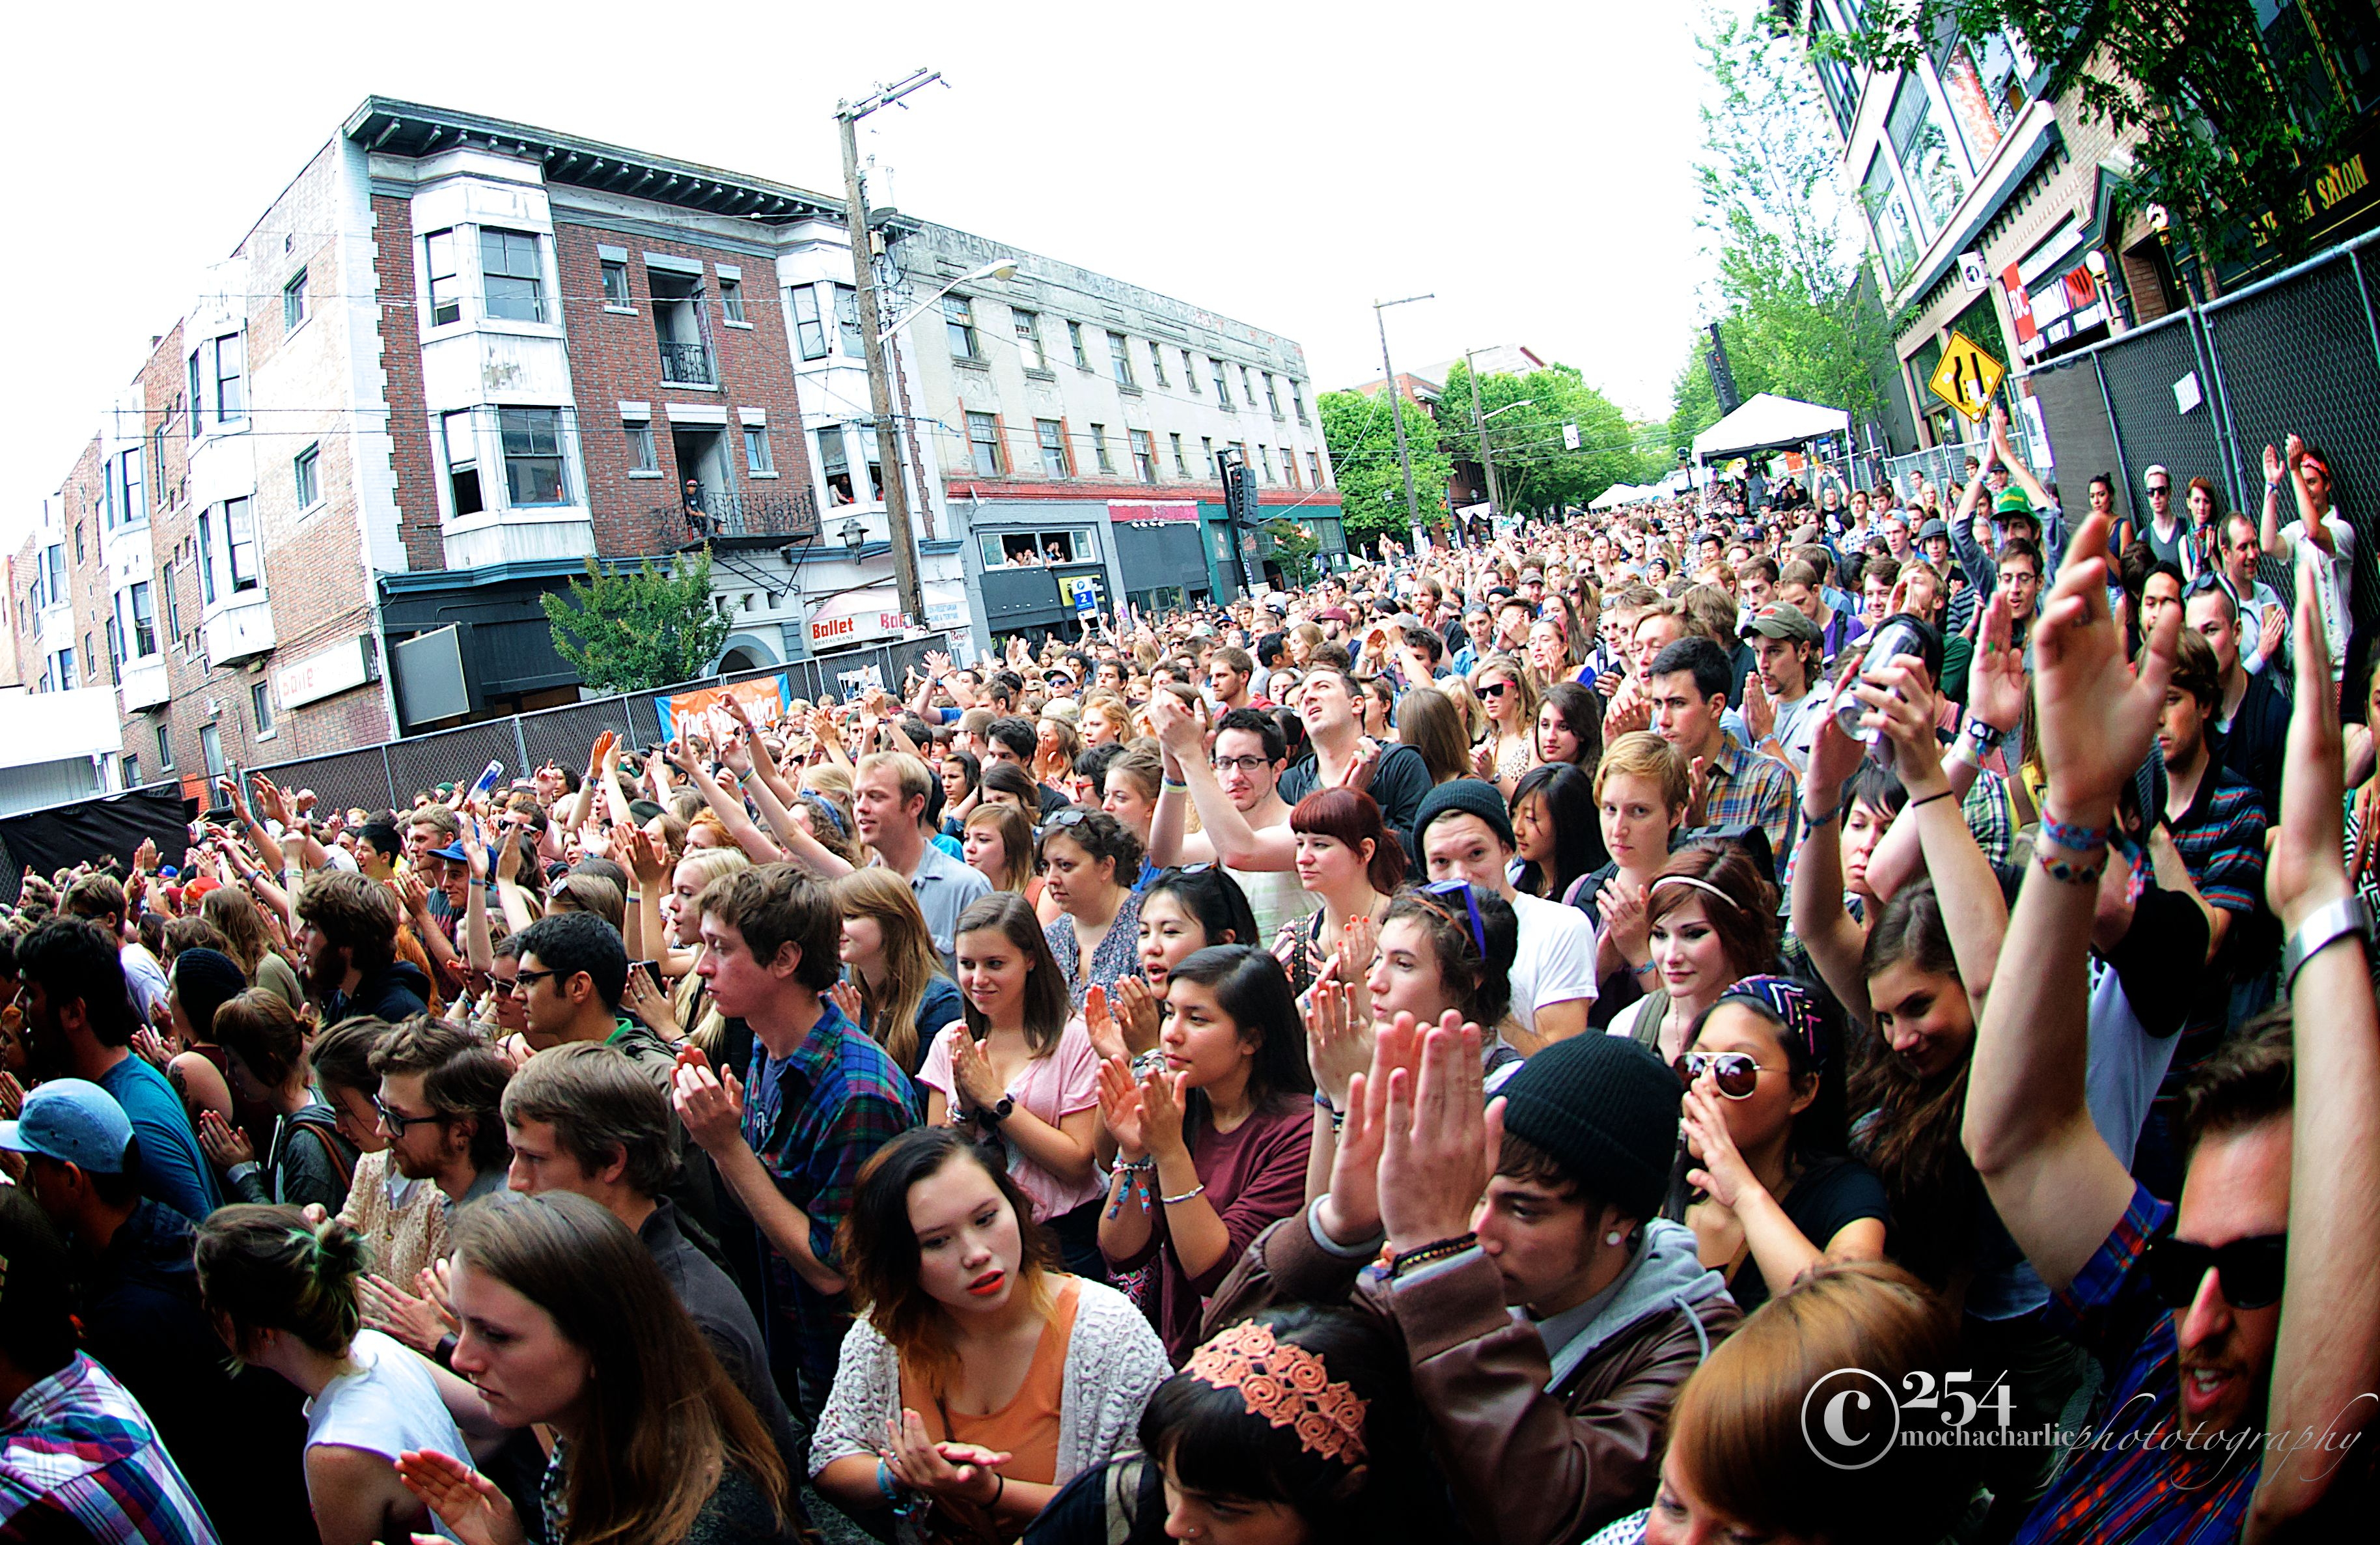 Capitol Hill Block Party 2012: Day 1